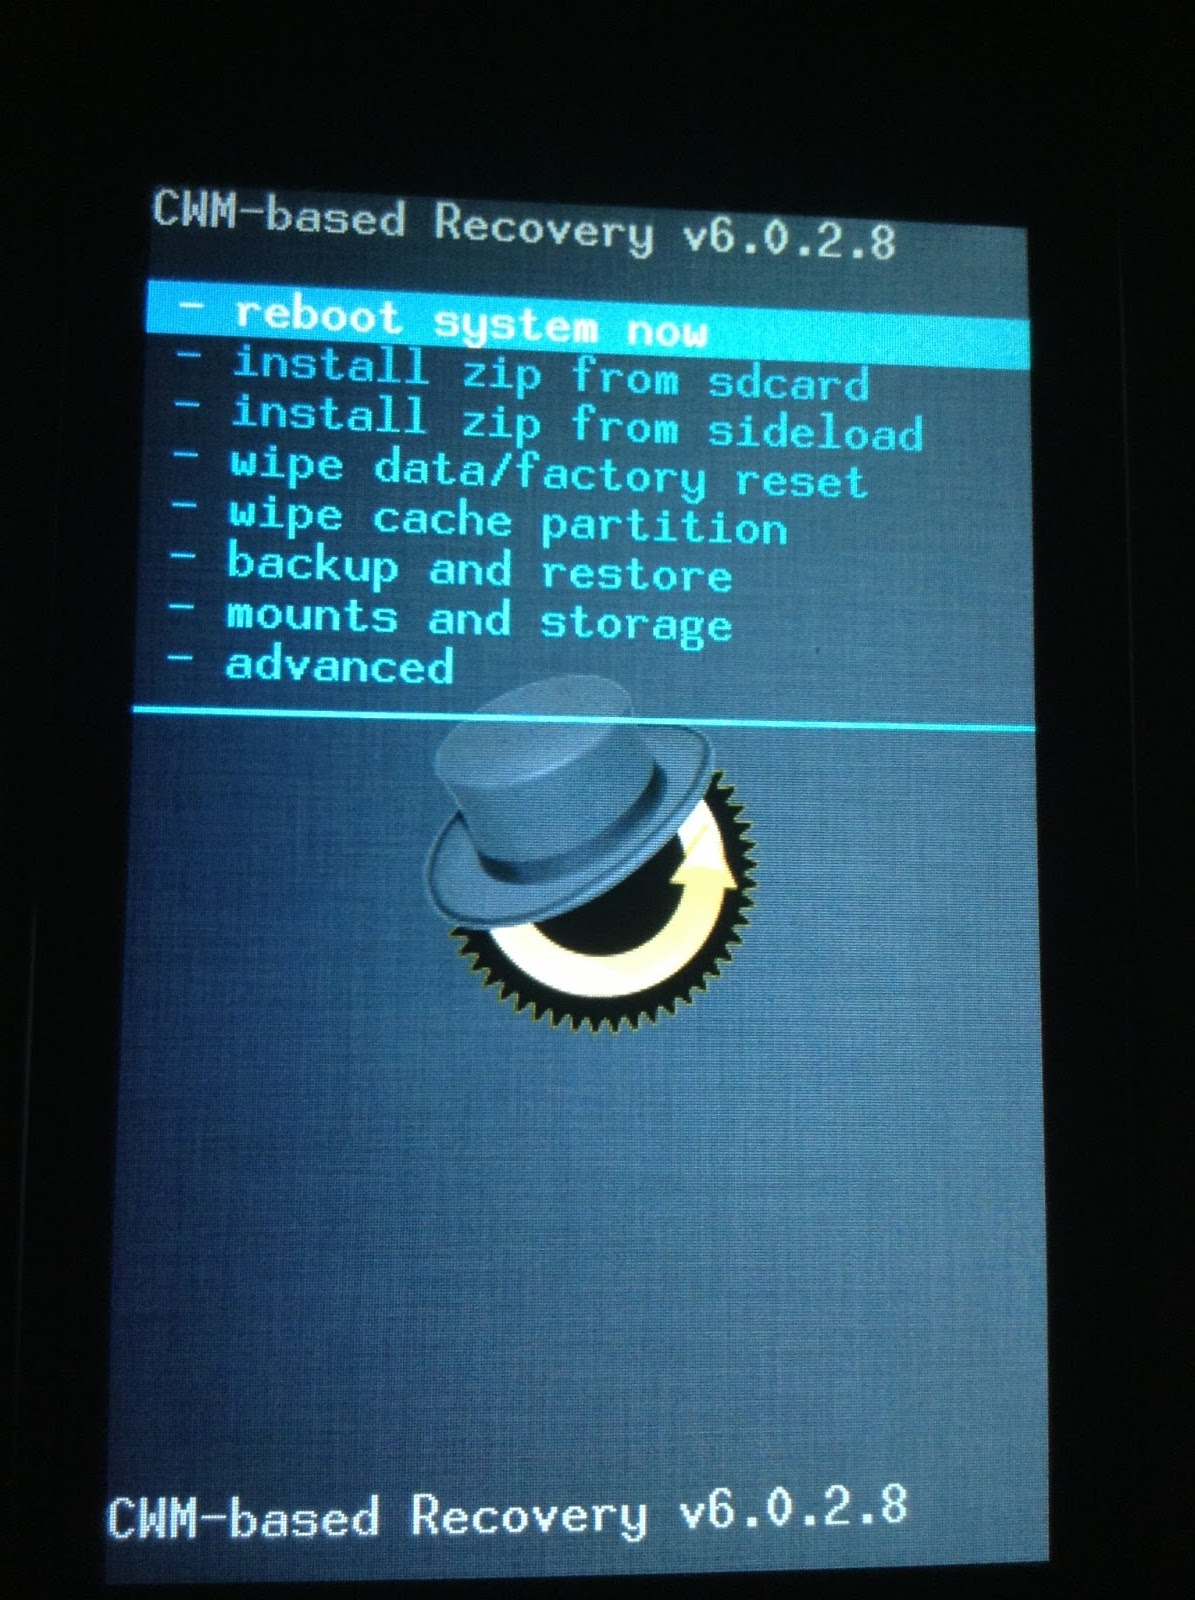 ClockworkMod (CWM) Recovery and TWRP Recovery For Samsung Galaxy S 4